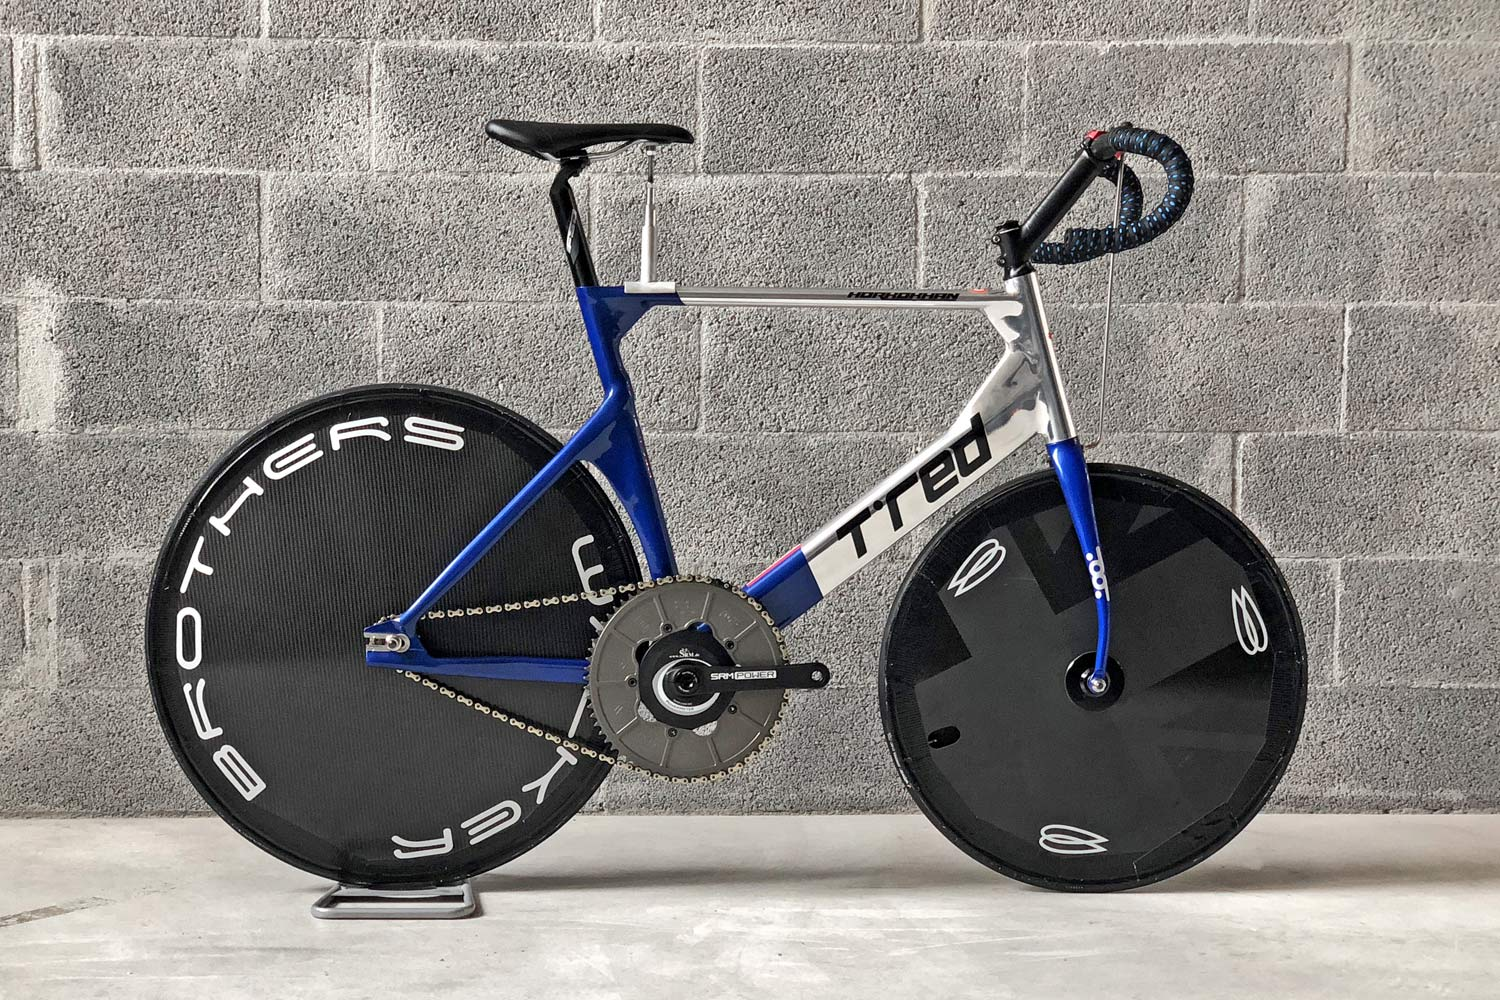 https://bikerumor.com/2019/08/20/tred-horkokhan-slips-in-modern-aero-alloy-stayer-bike-for-motor-paced-track-racing/